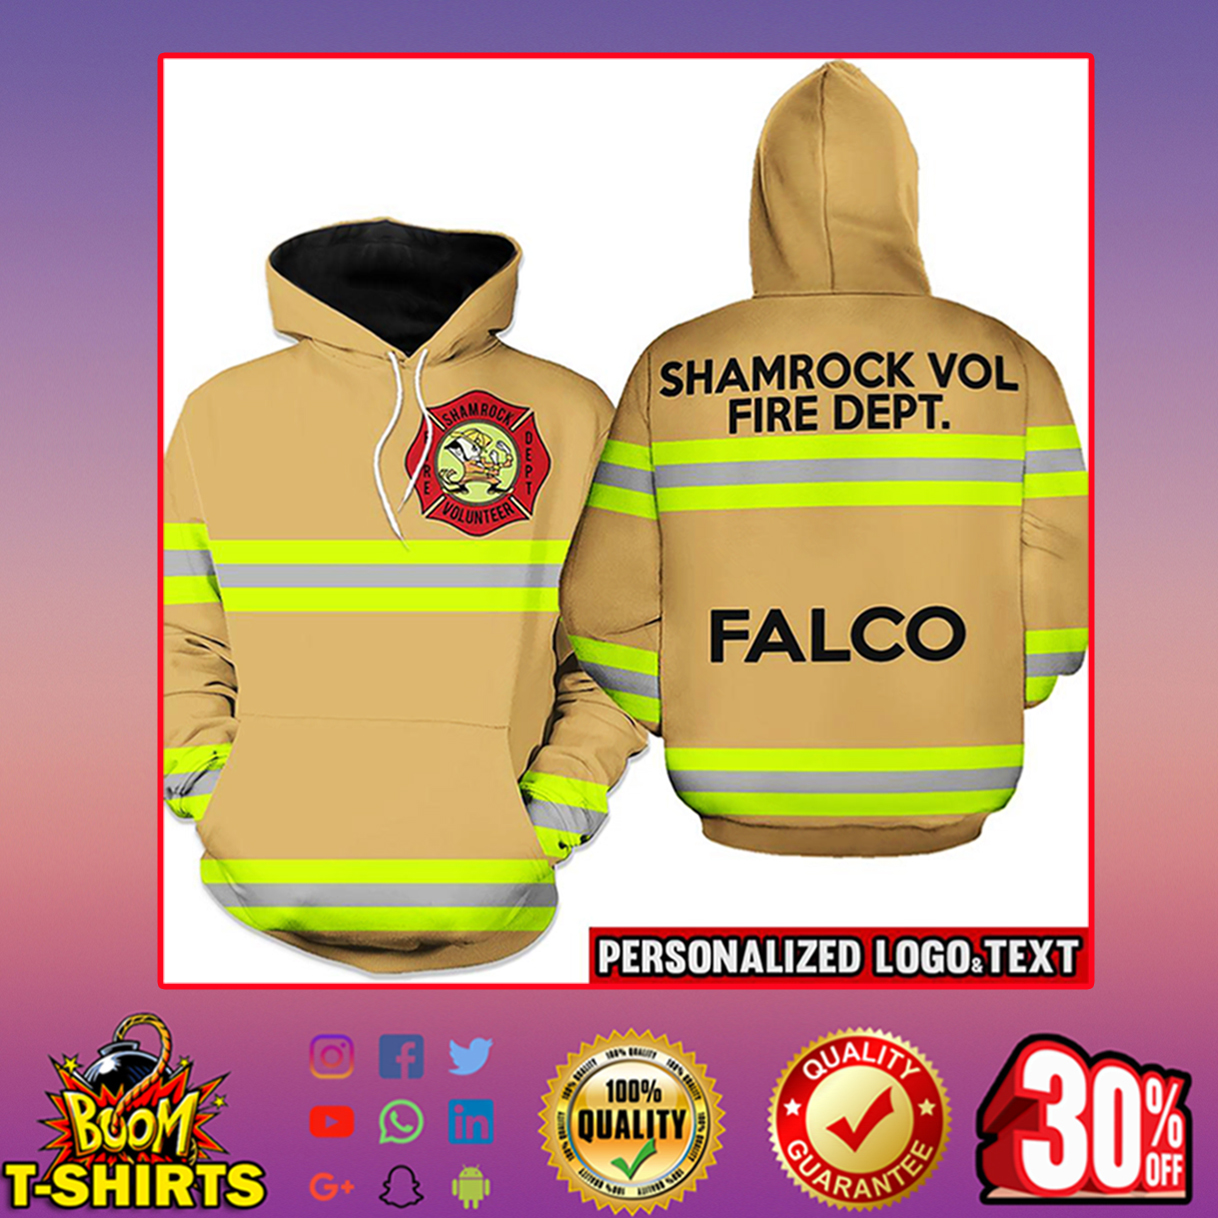 Firefighter Shamrock Volunteer Fire Dept. Falco Hoodie 3d